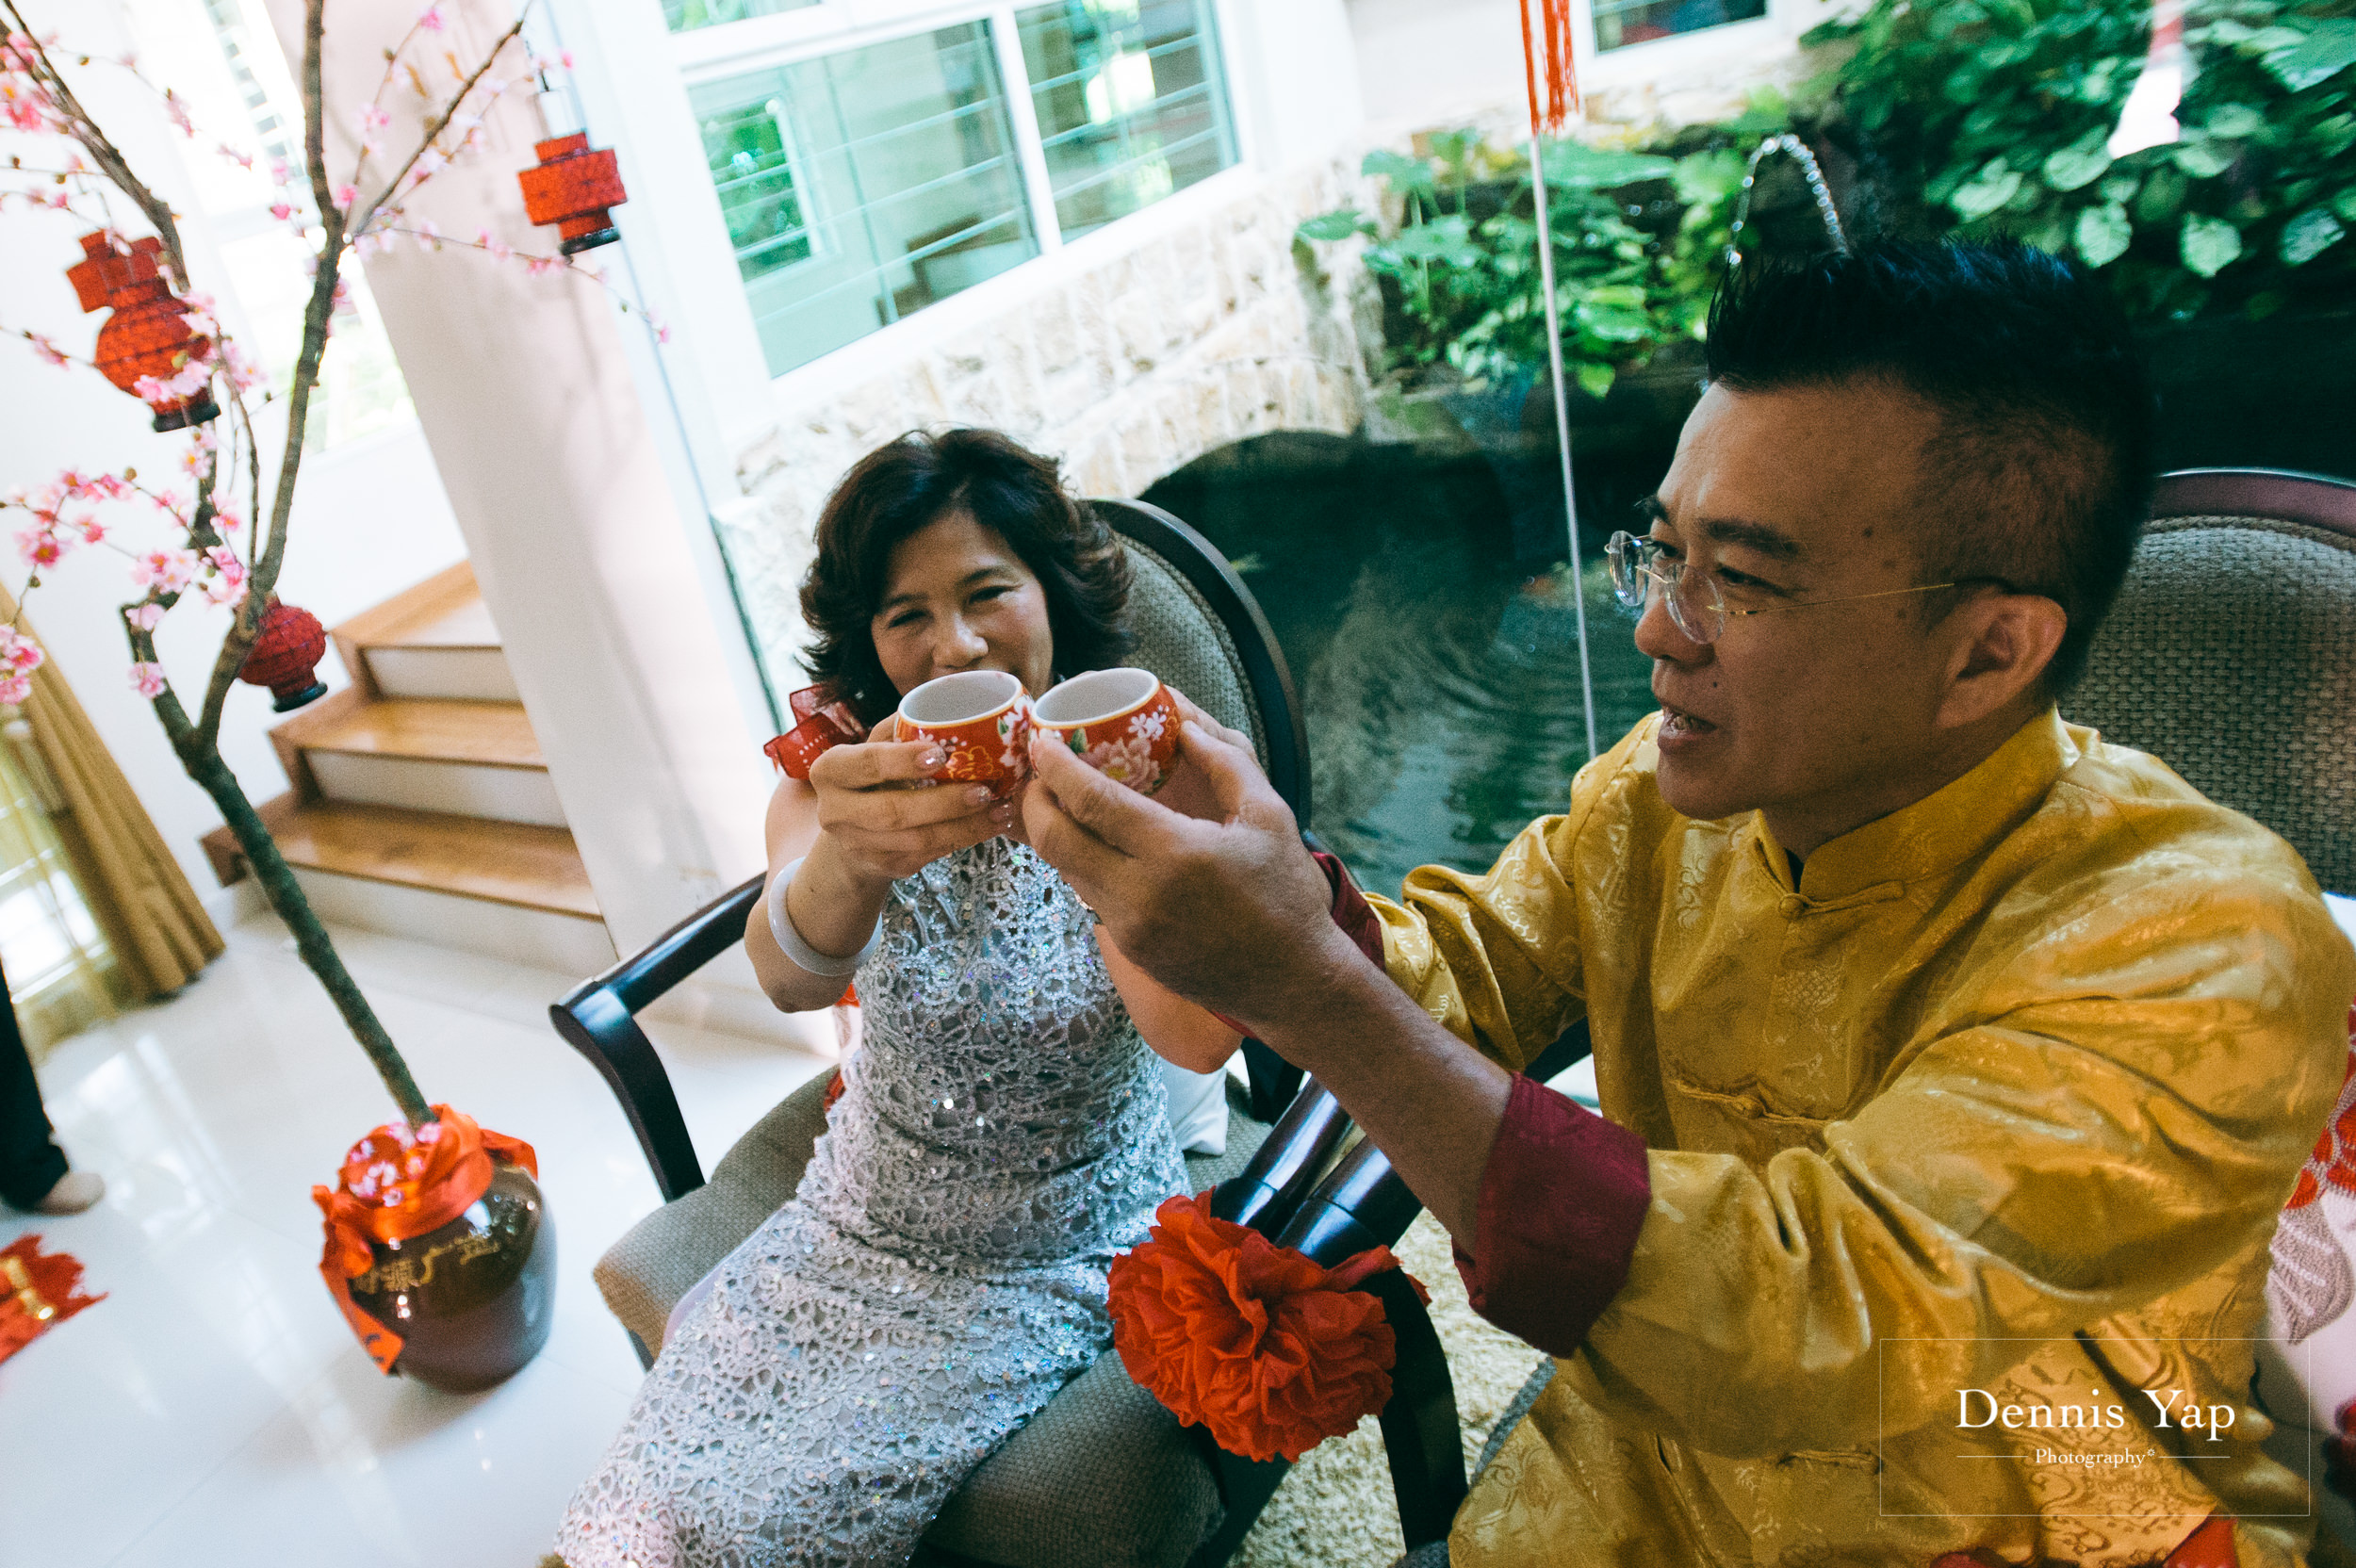 bobby fiona dennis yap photography malaysia wedding photographer chinese traditional-82.jpg